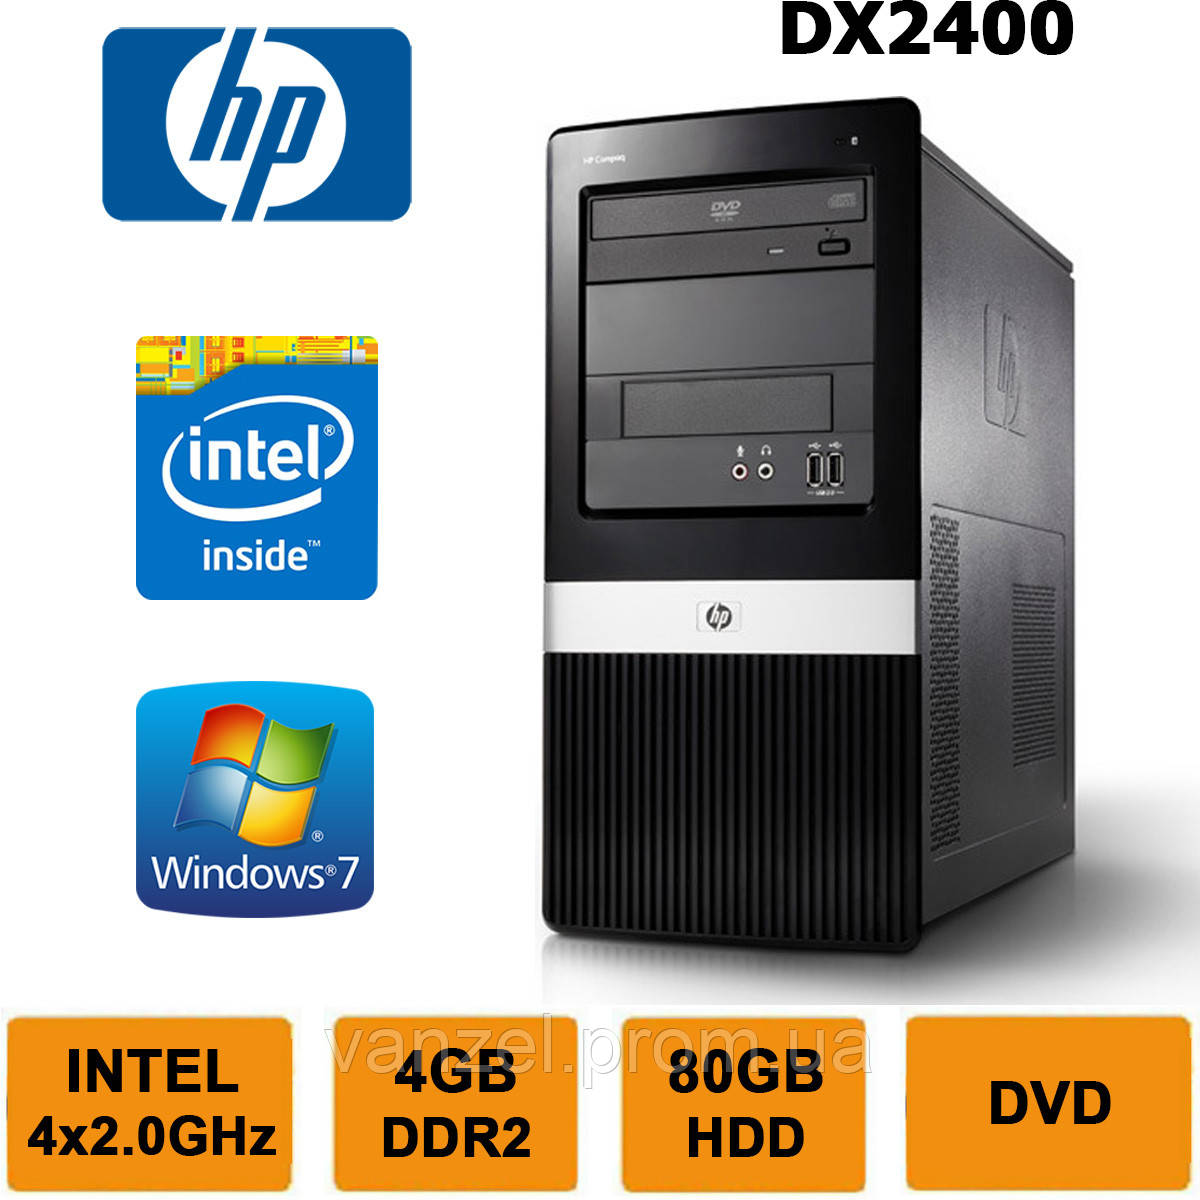 DOWNLOAD DRIVERS: HP DX2400 PCI